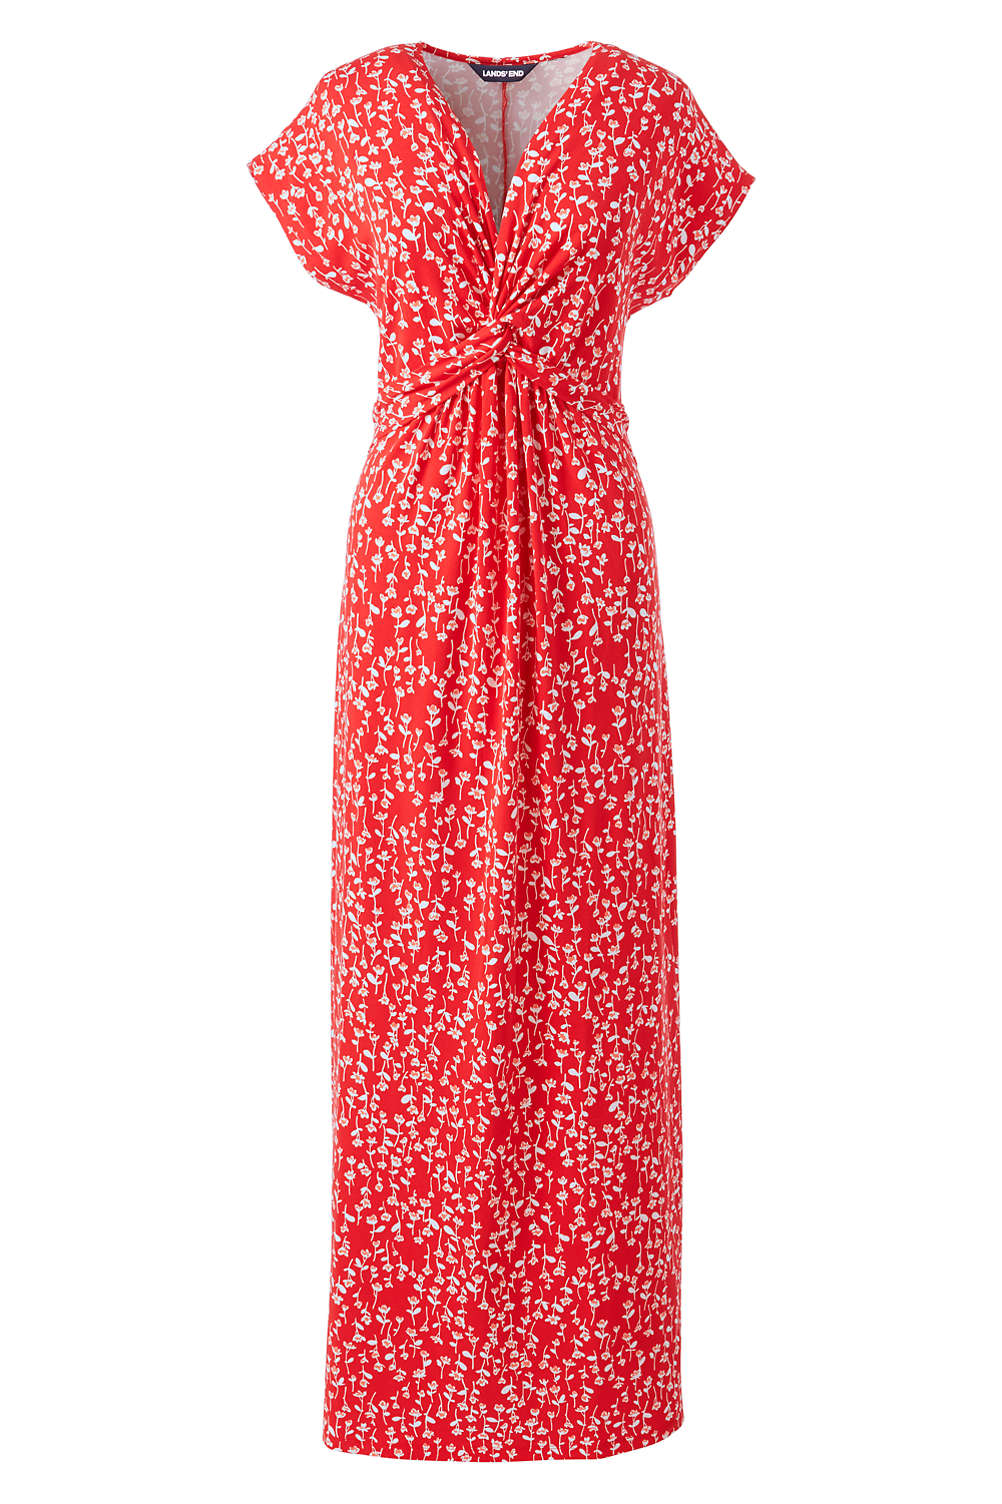 4cacd1eca Women's Plus Size Cap Sleeve Knot Front Maxi Dress from Lands' End